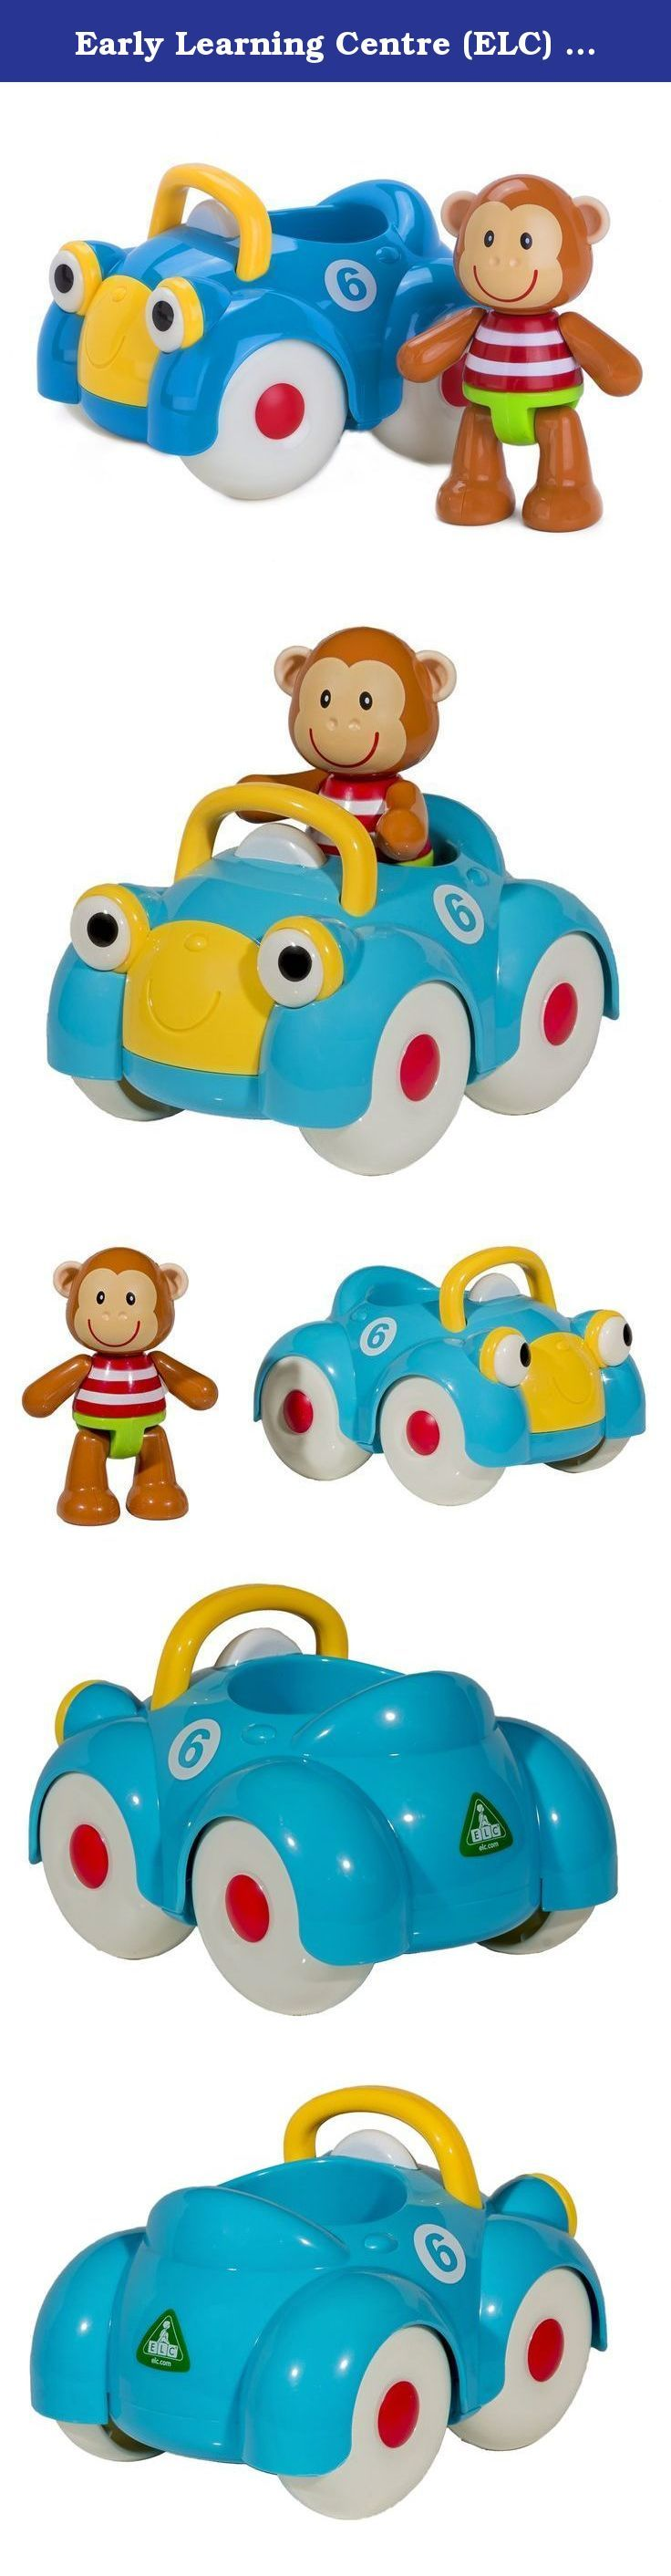 "Early Learning Centre (ELC) Toybox Monty Monkey and his Motor Car Baby Toy. Meet Monty Monkey and his motor car, which has a friendly face and numbers on the side. Place him in the car and whizz him across the floor to encourage your little one to crawl and walk. Monty Monkey makes clicking noises when you move his head, arms and legs. He can stand or sit in his car. Monty Monkey is approx. 4"" tall. Ages 1 to 3 years."